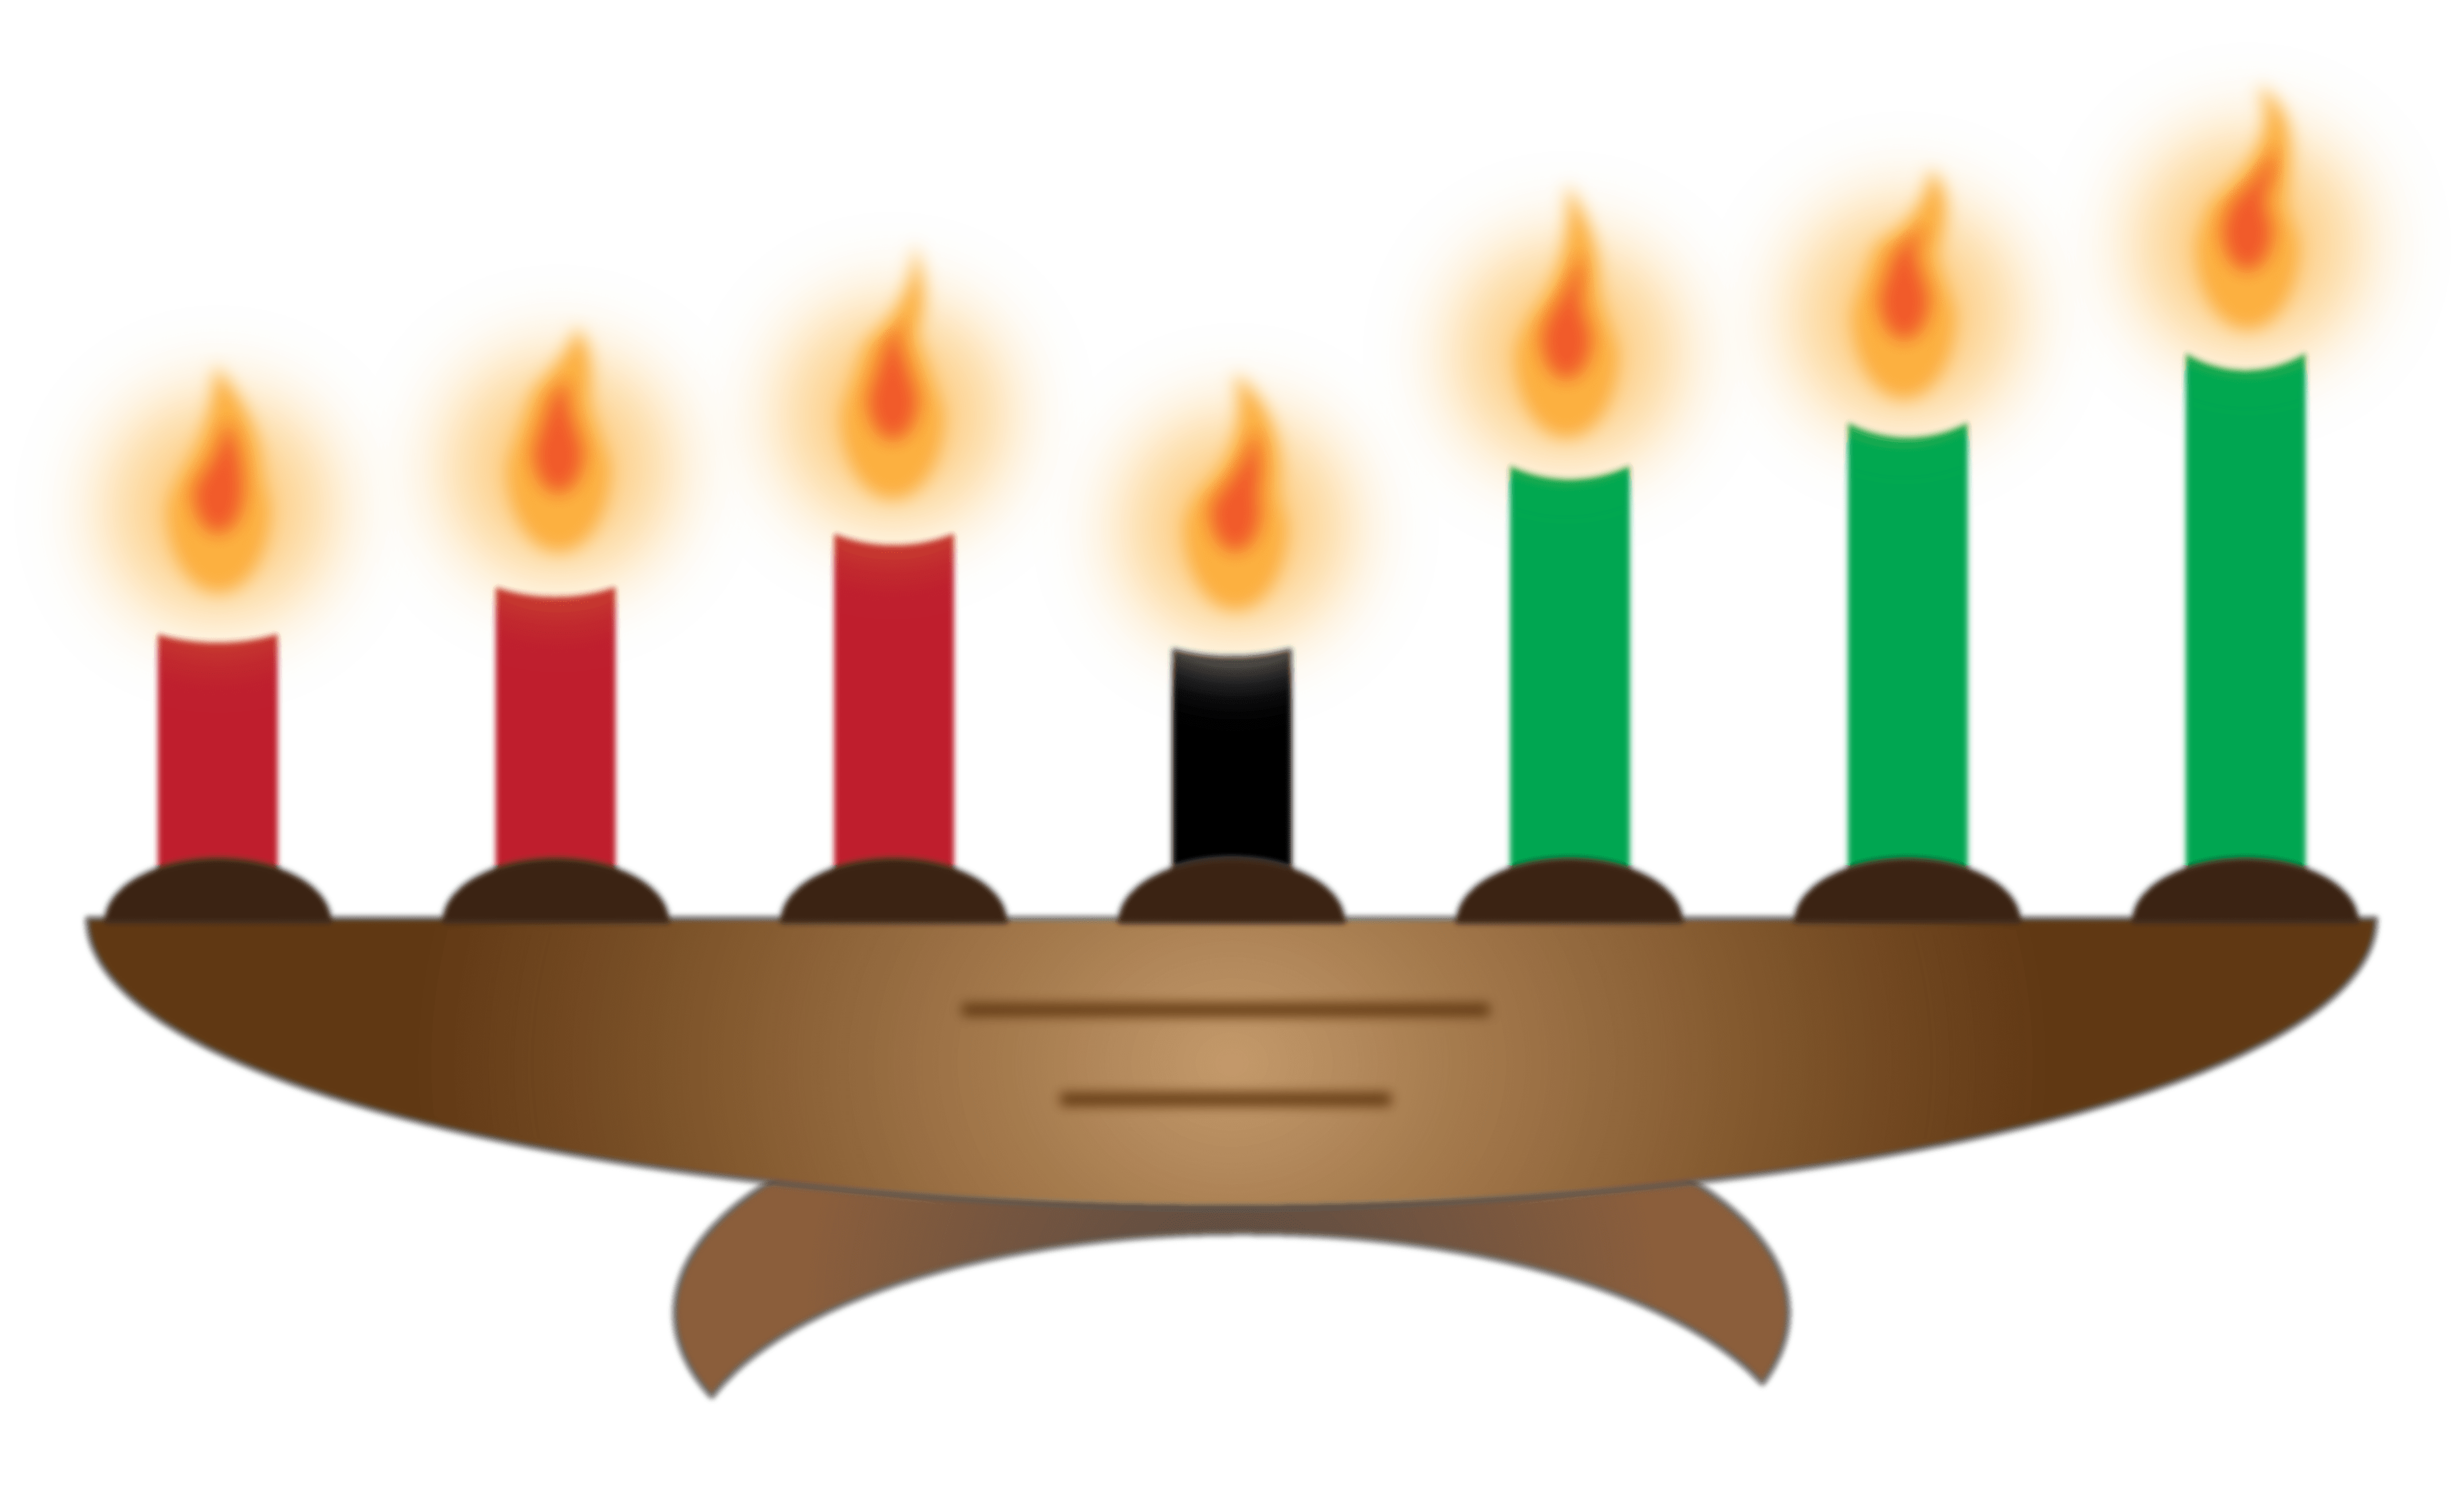 Clipart happy kwanzaa, Clipart happy kwanzaa Transparent.